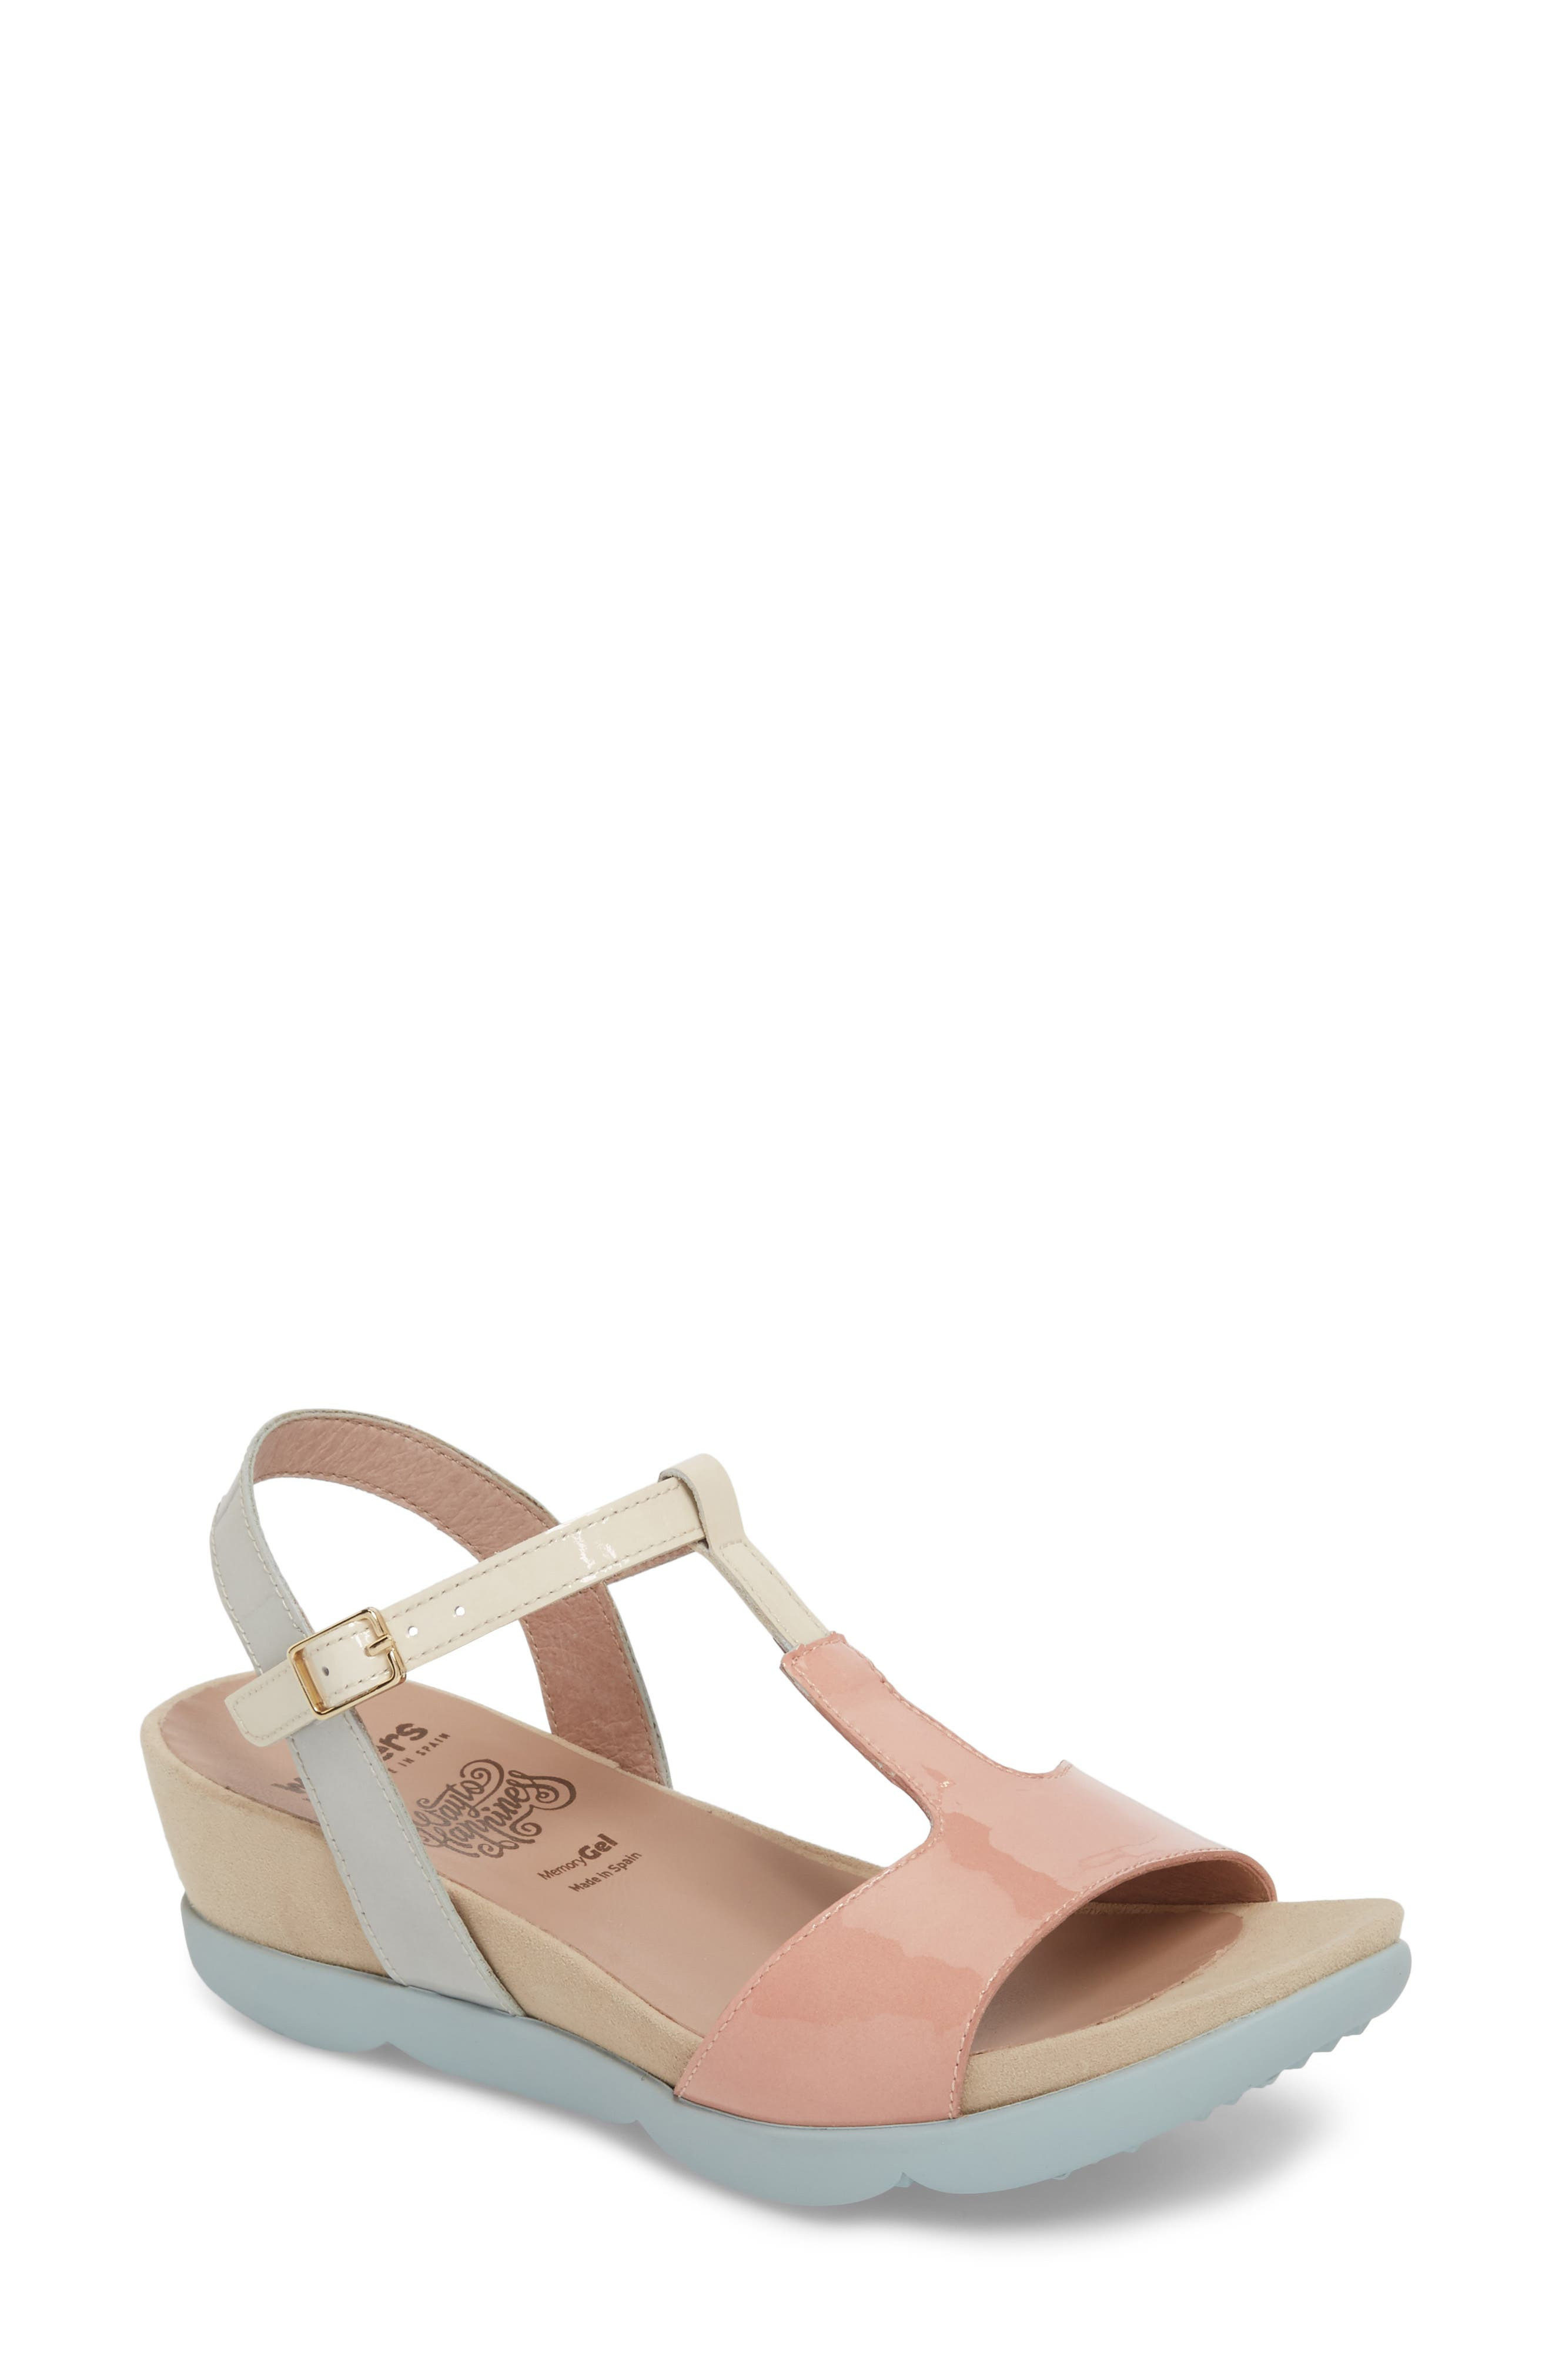 Wonders Wedge Sandal, Beige